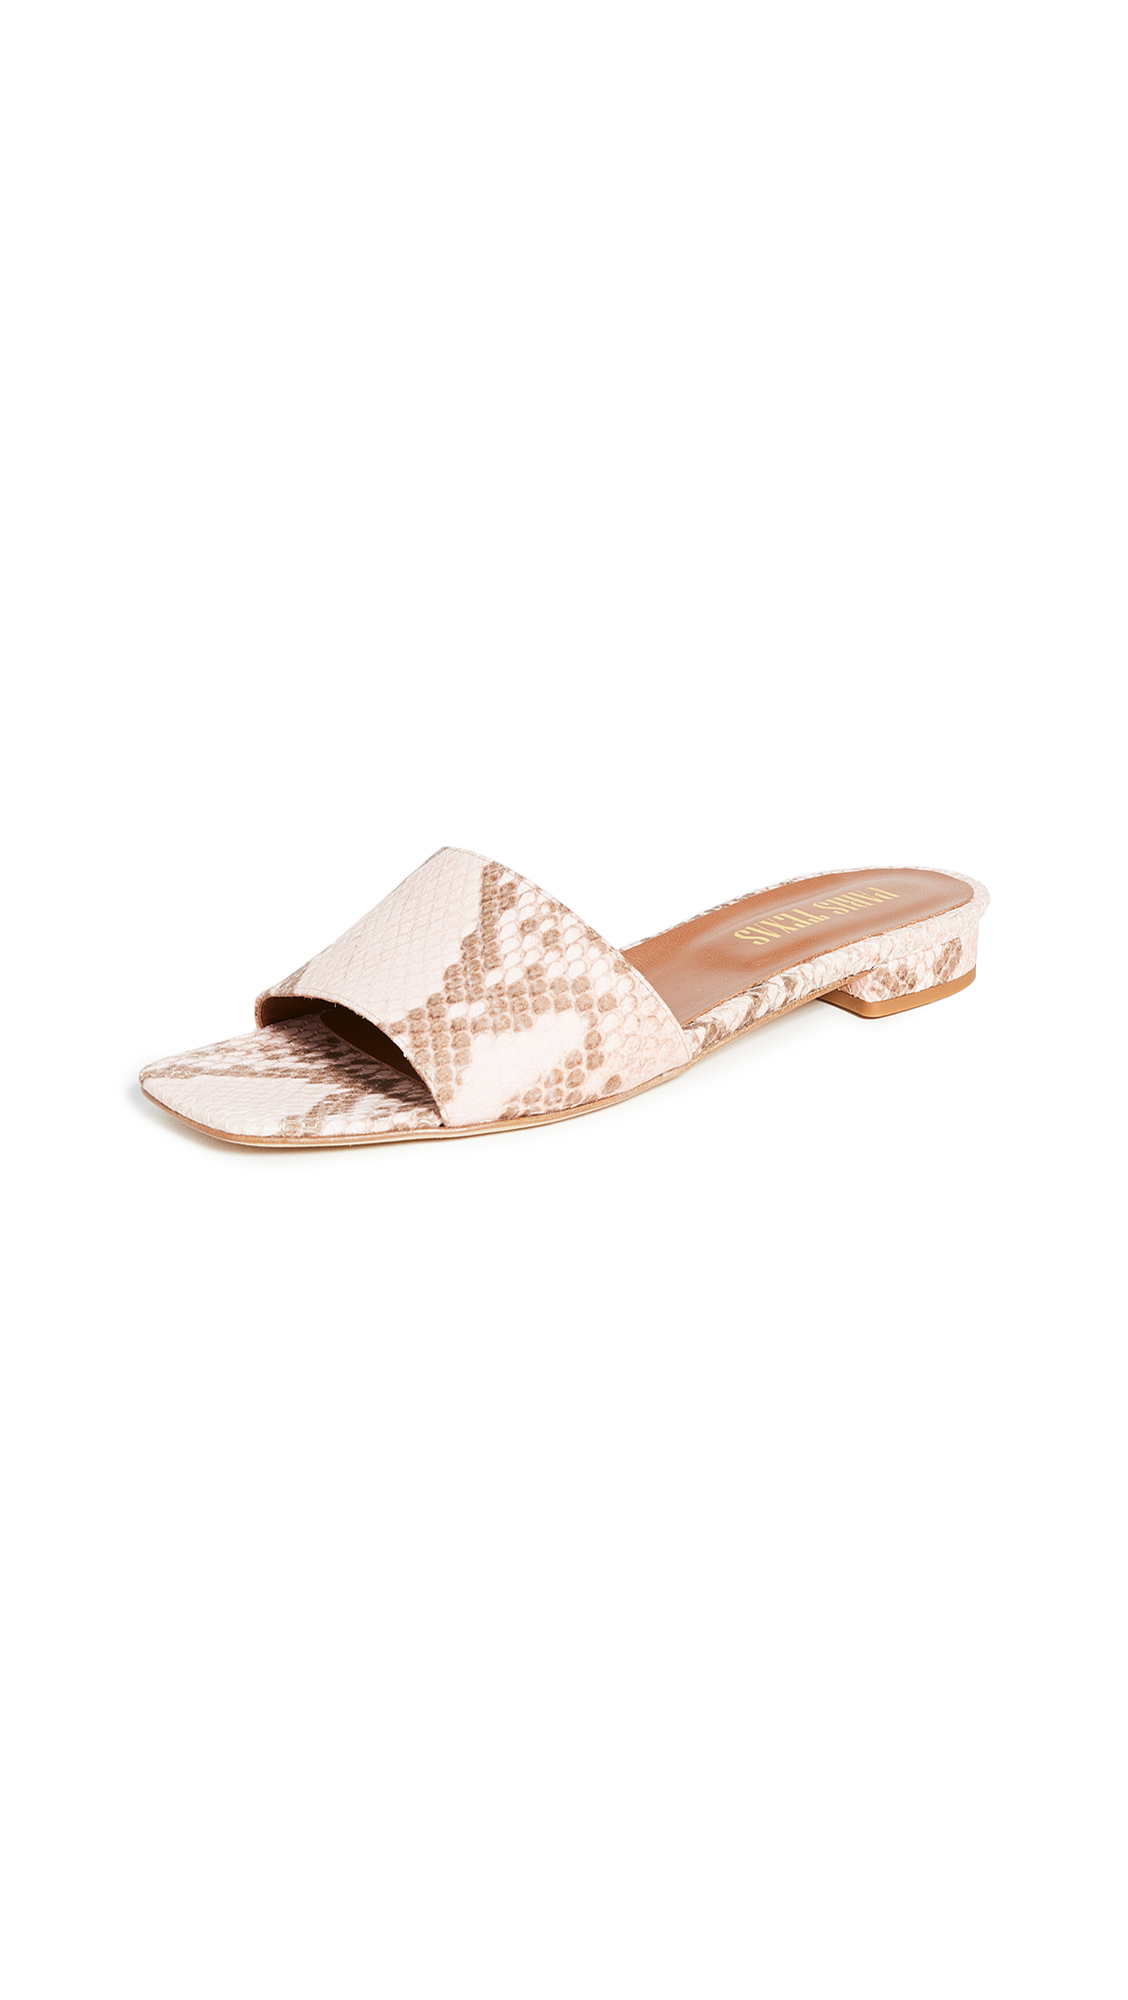 Paris Texas Faded Python Print Square Toe Flats – 30% Off Sale